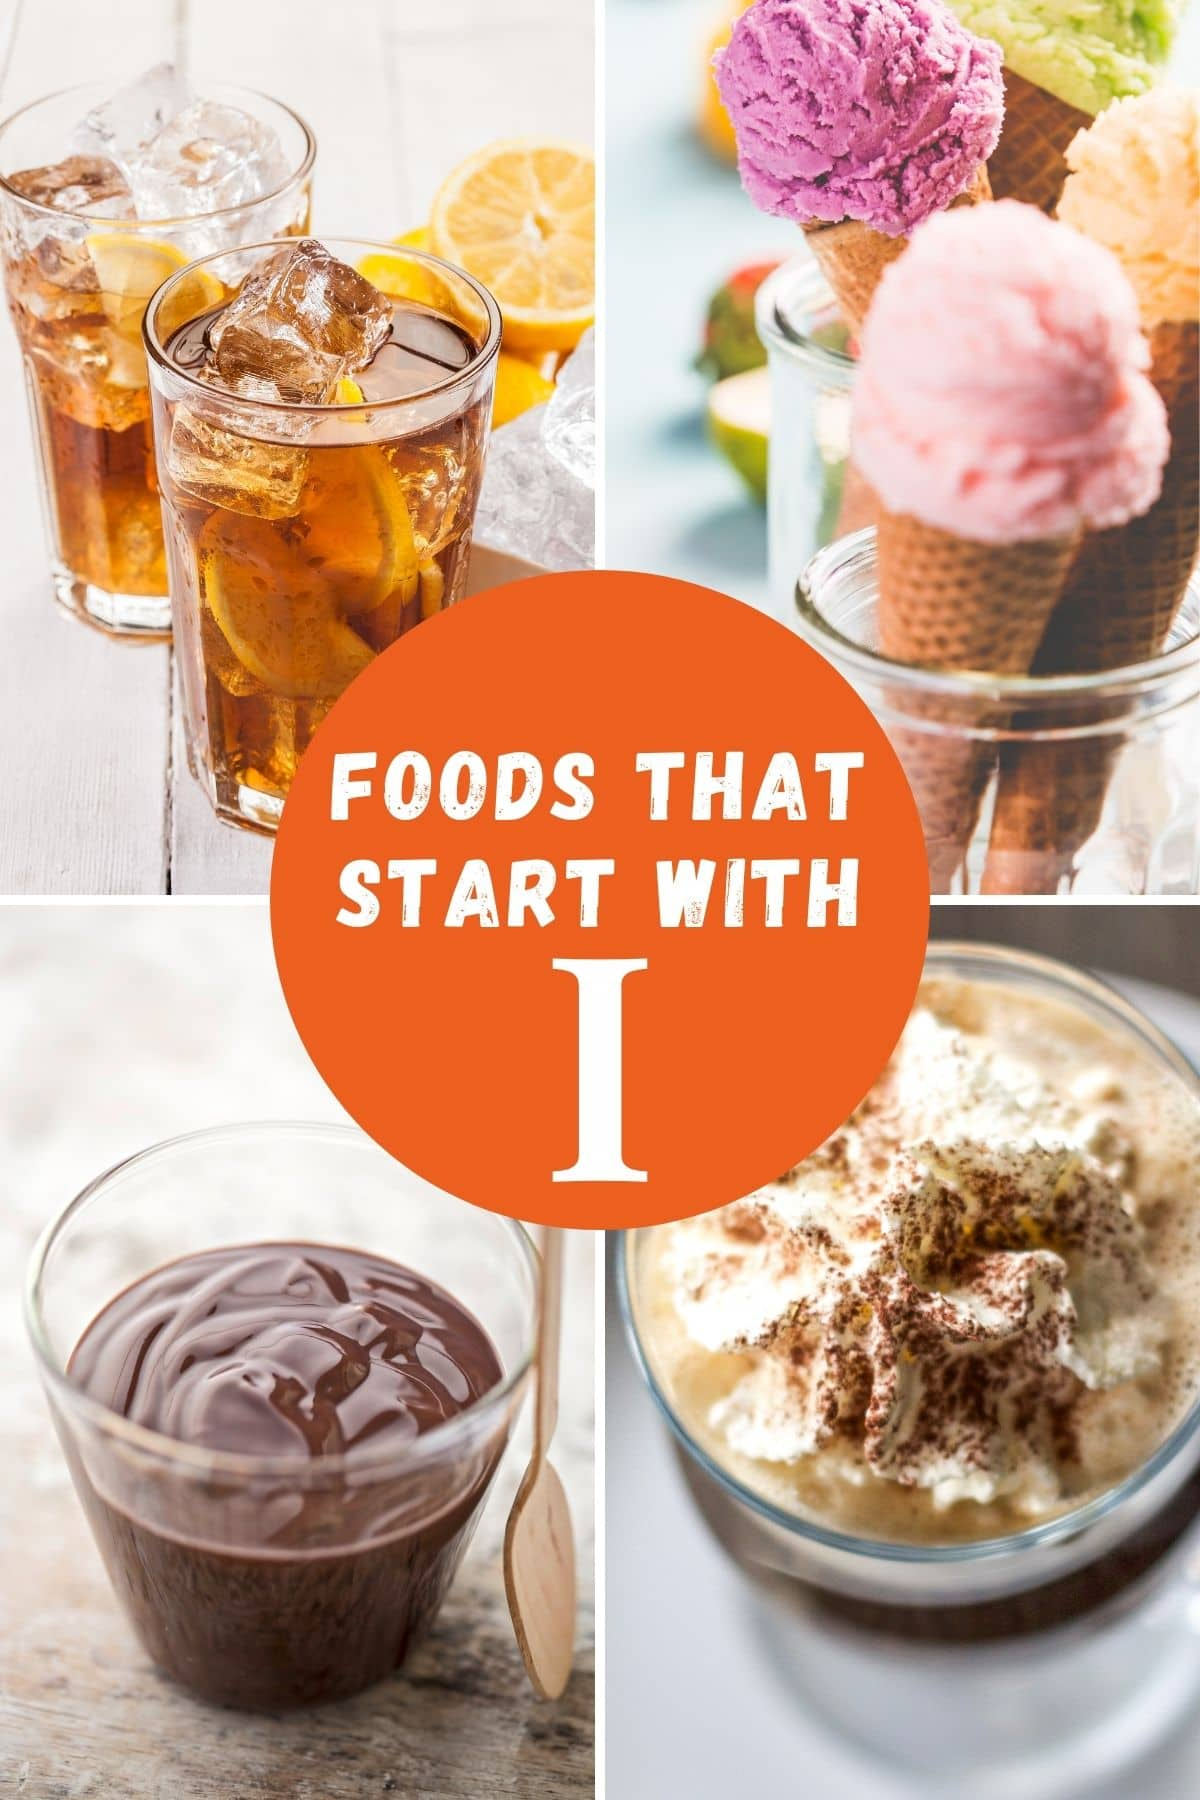 Foods that begin with I